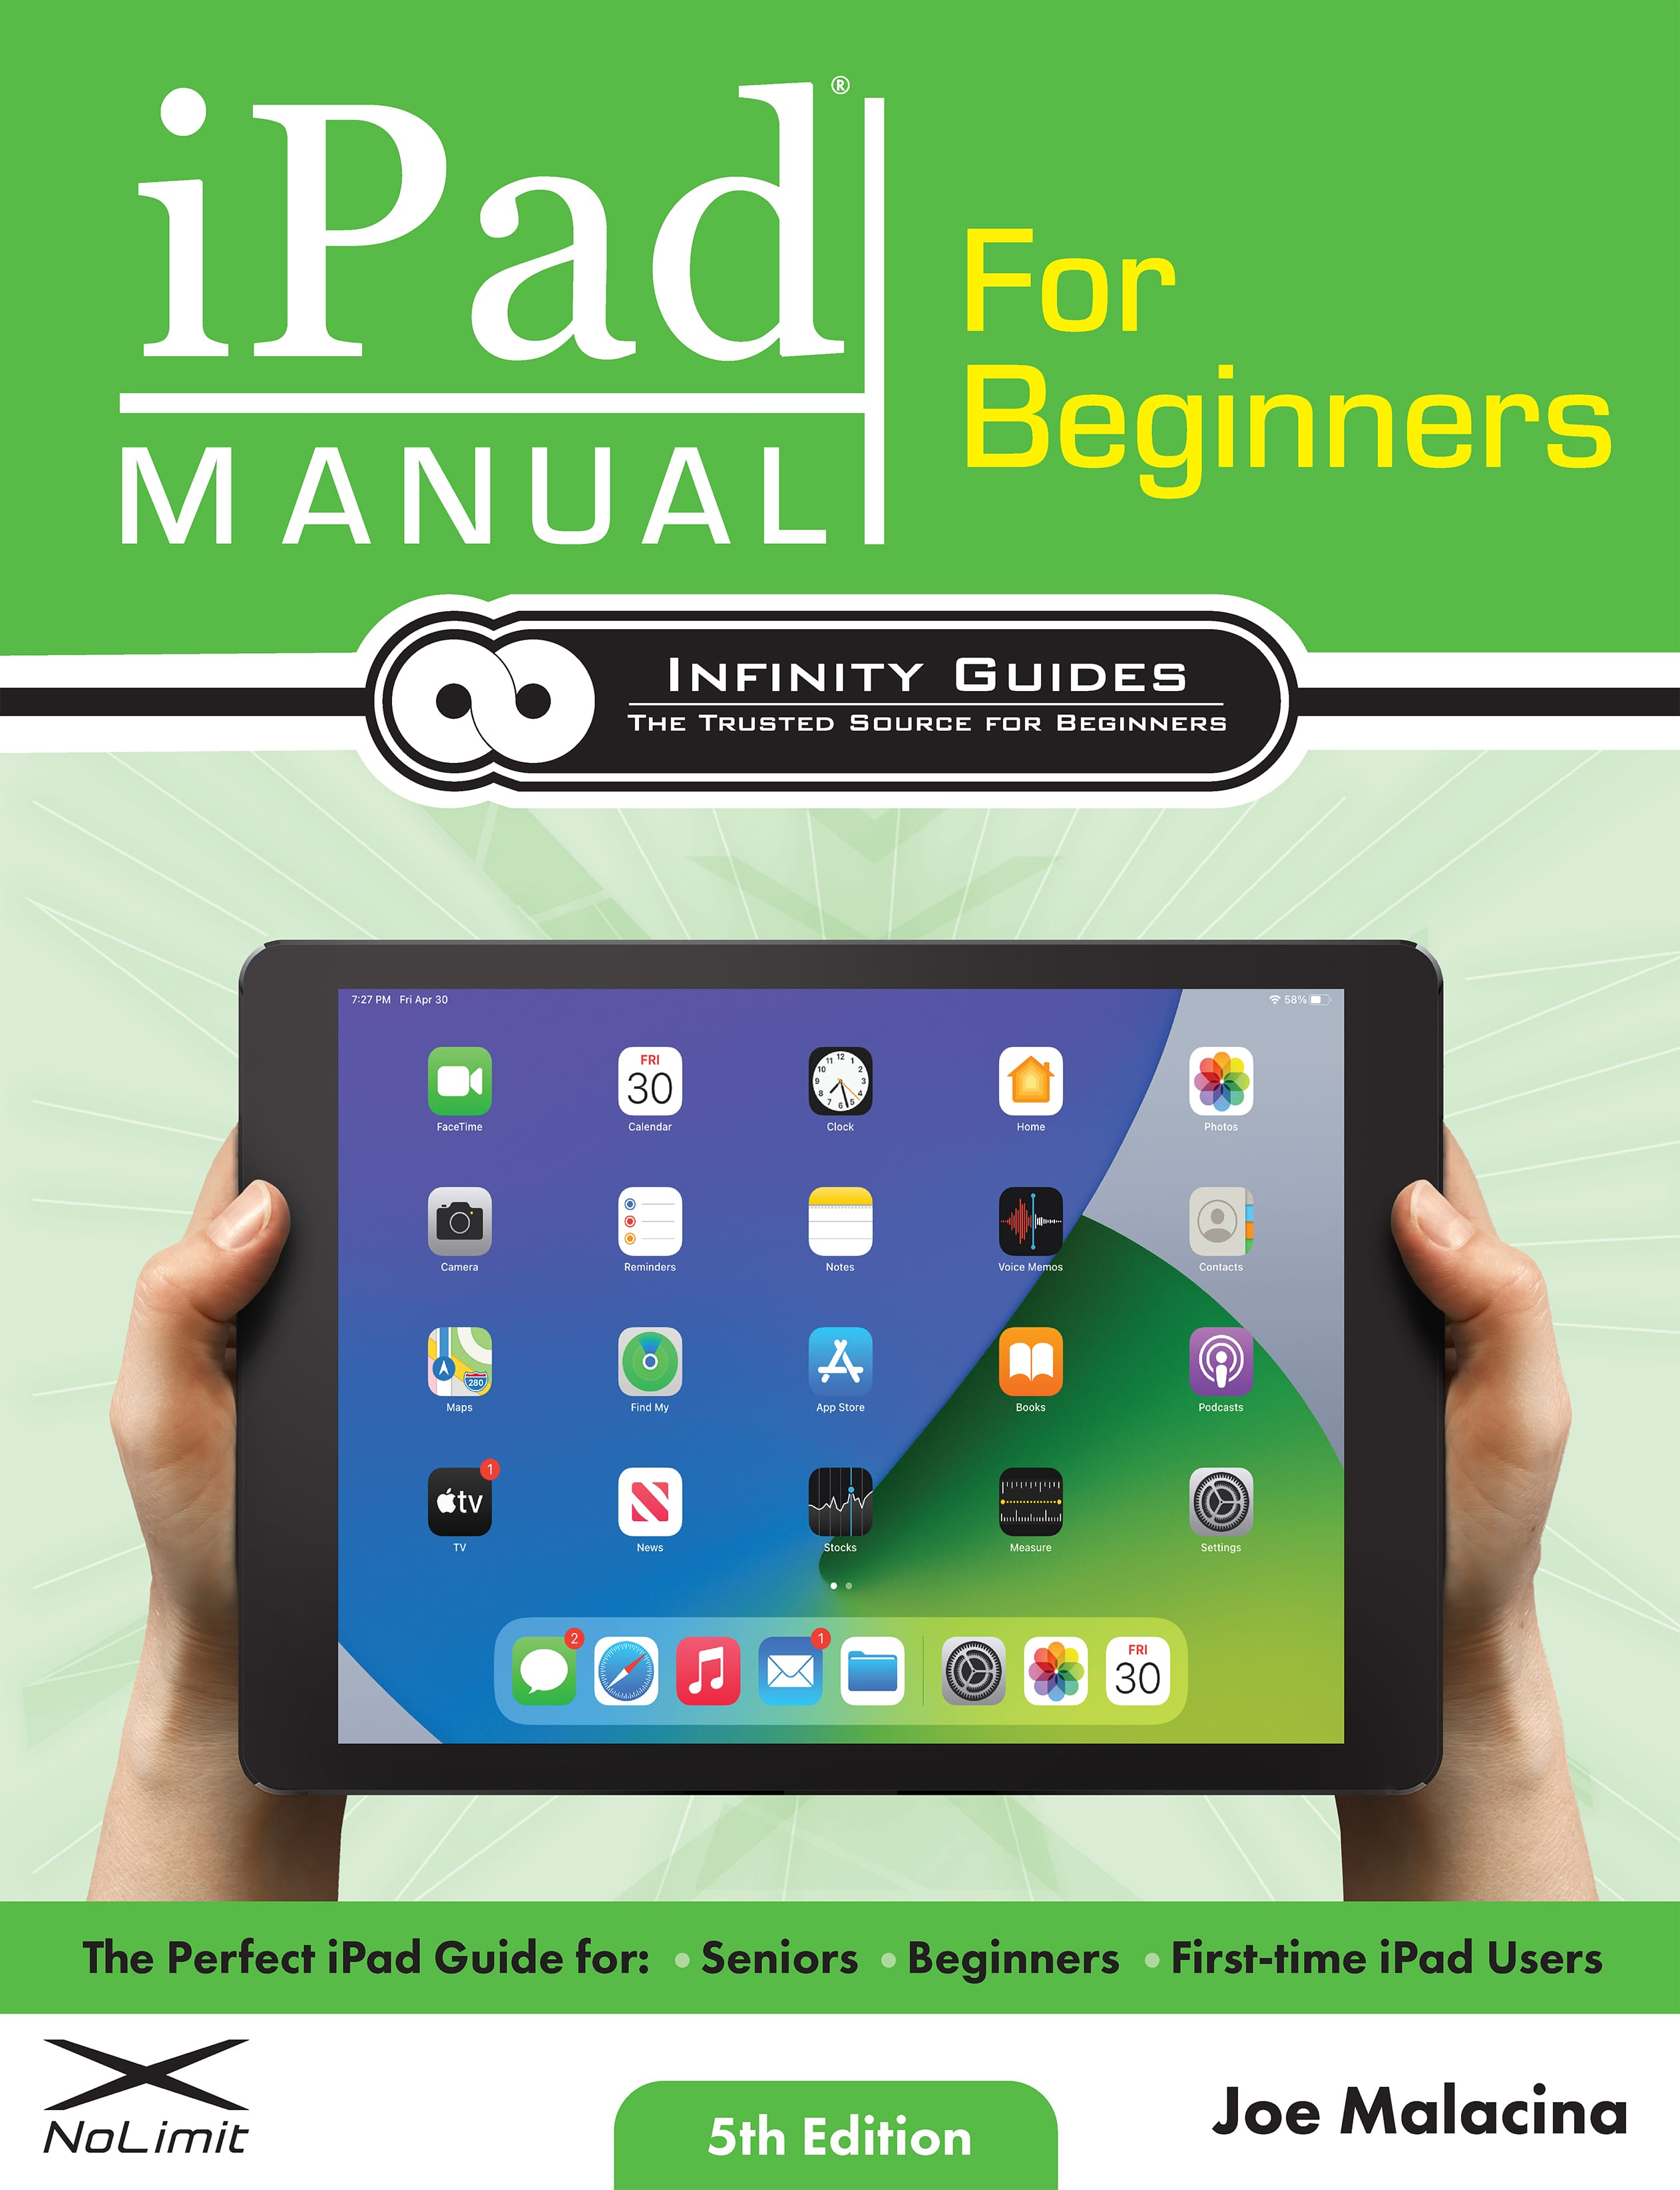 iPad Manual for Beginners